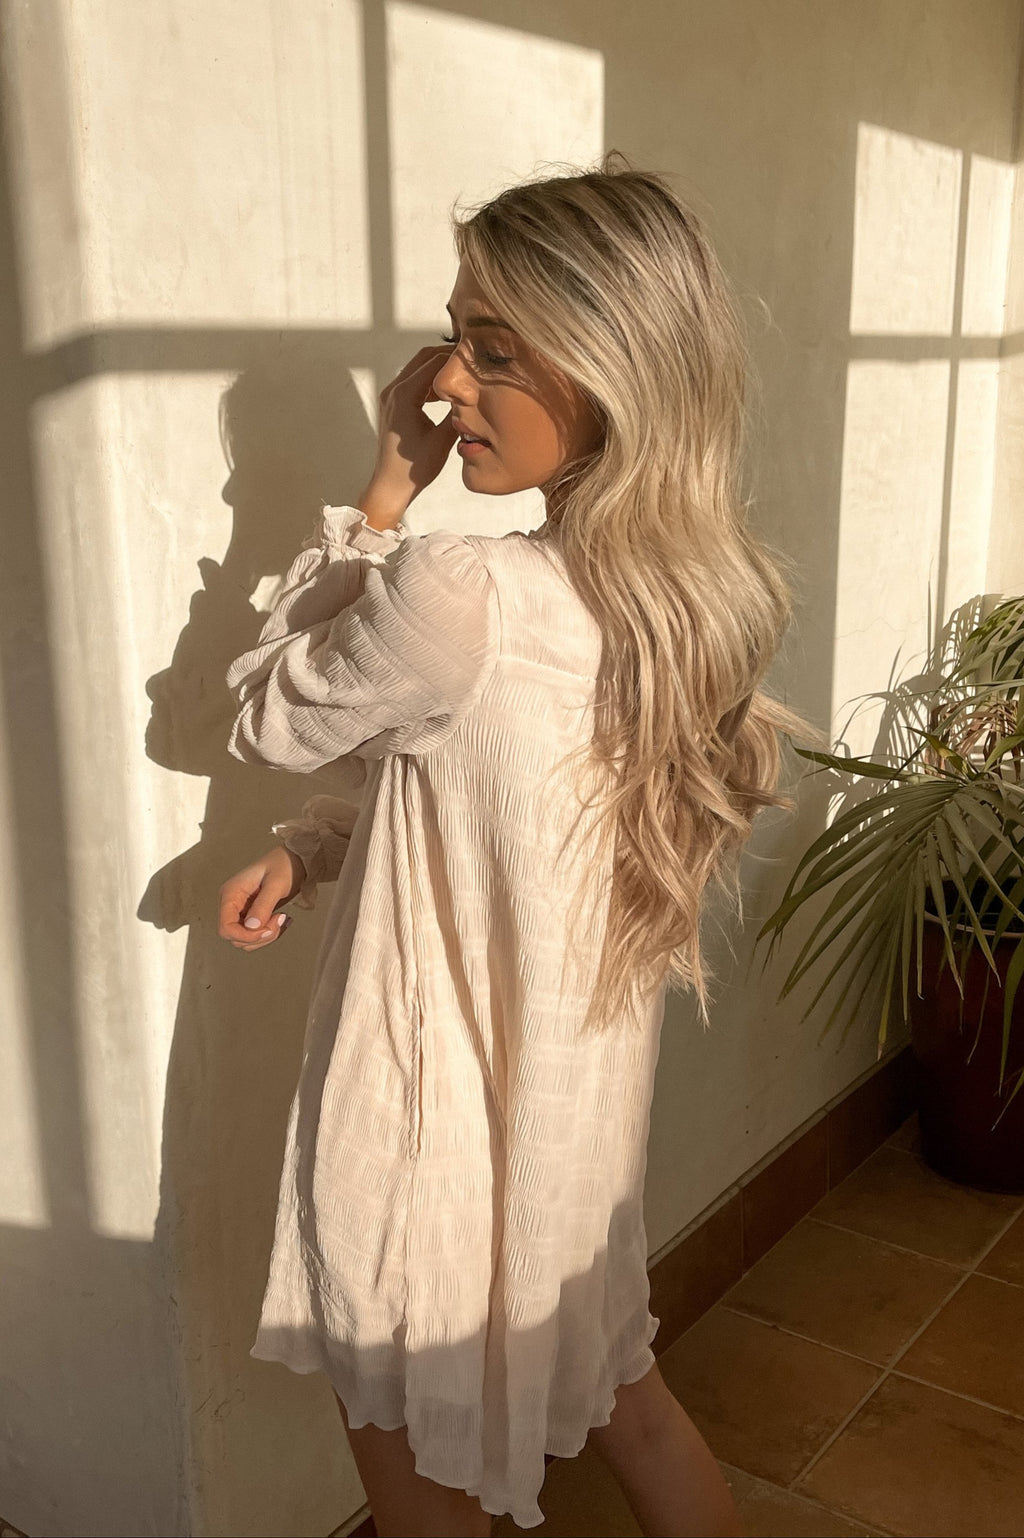 Isabelle Cream Long Sleeve Tunic Dress - LLACIE